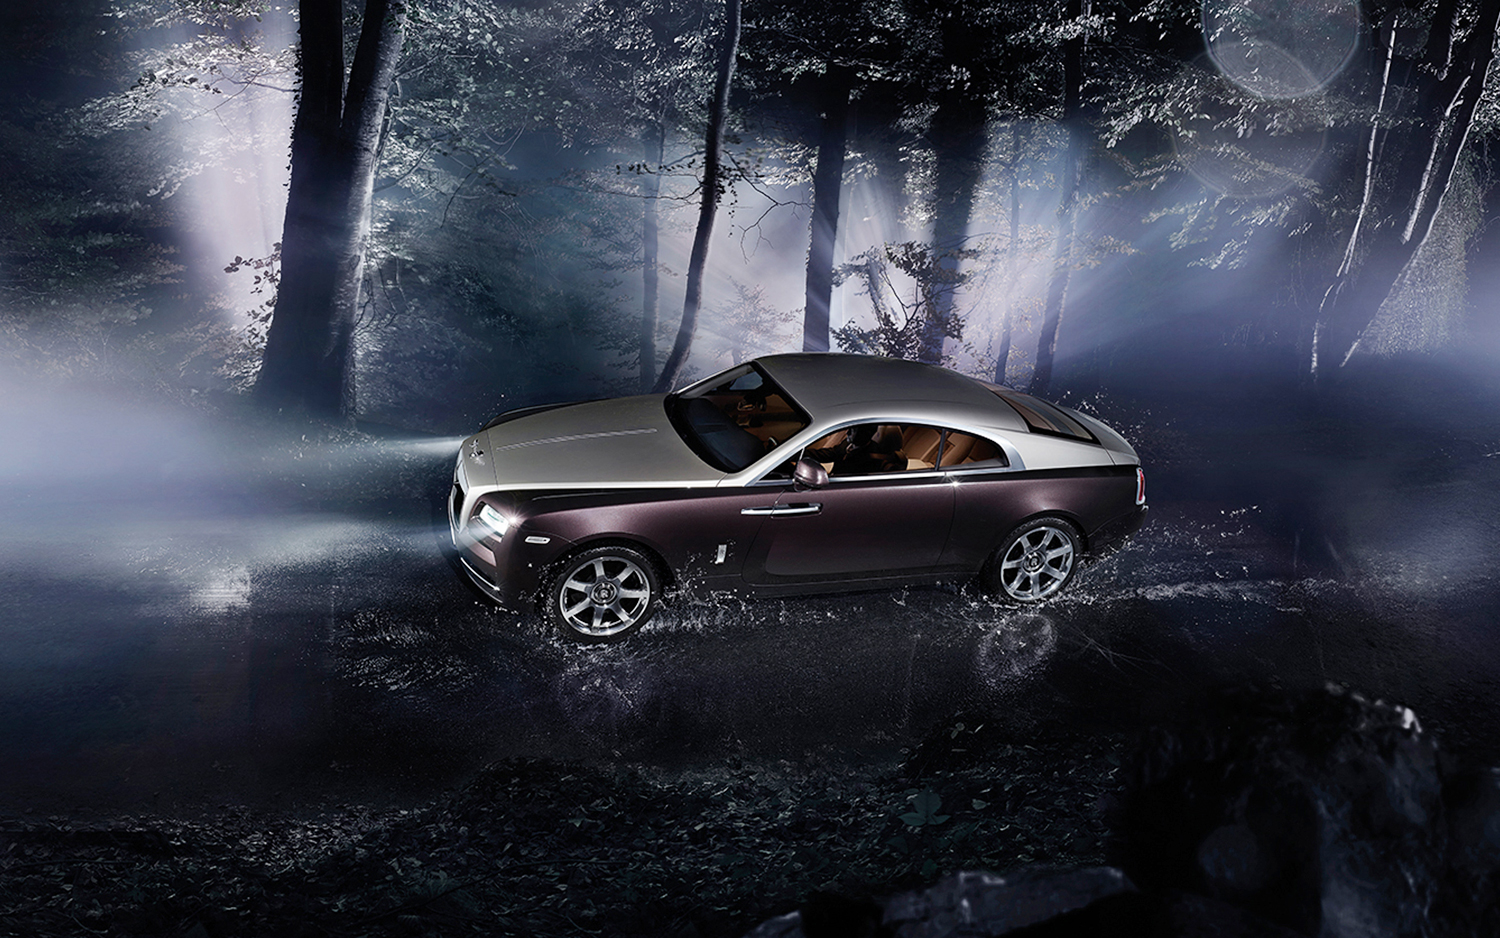 Wallpapers Scoop Rolls Royce Wraith Hd Wallpapers